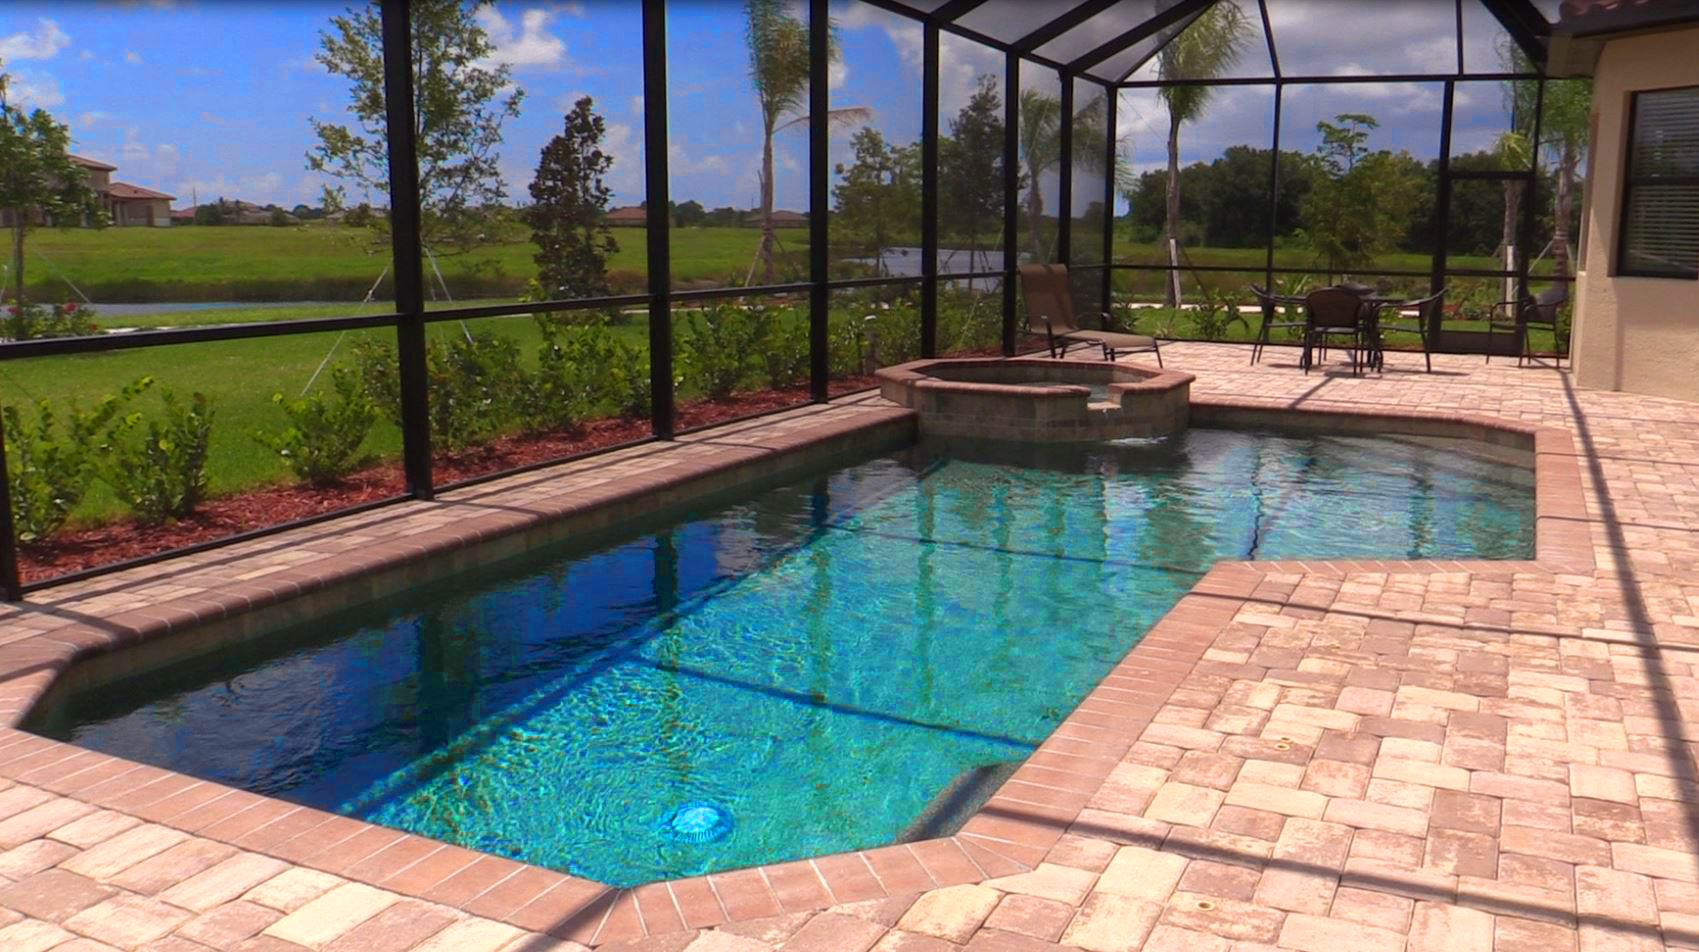 Gran paradiso venice florida real estate for sale for Home pool pictures